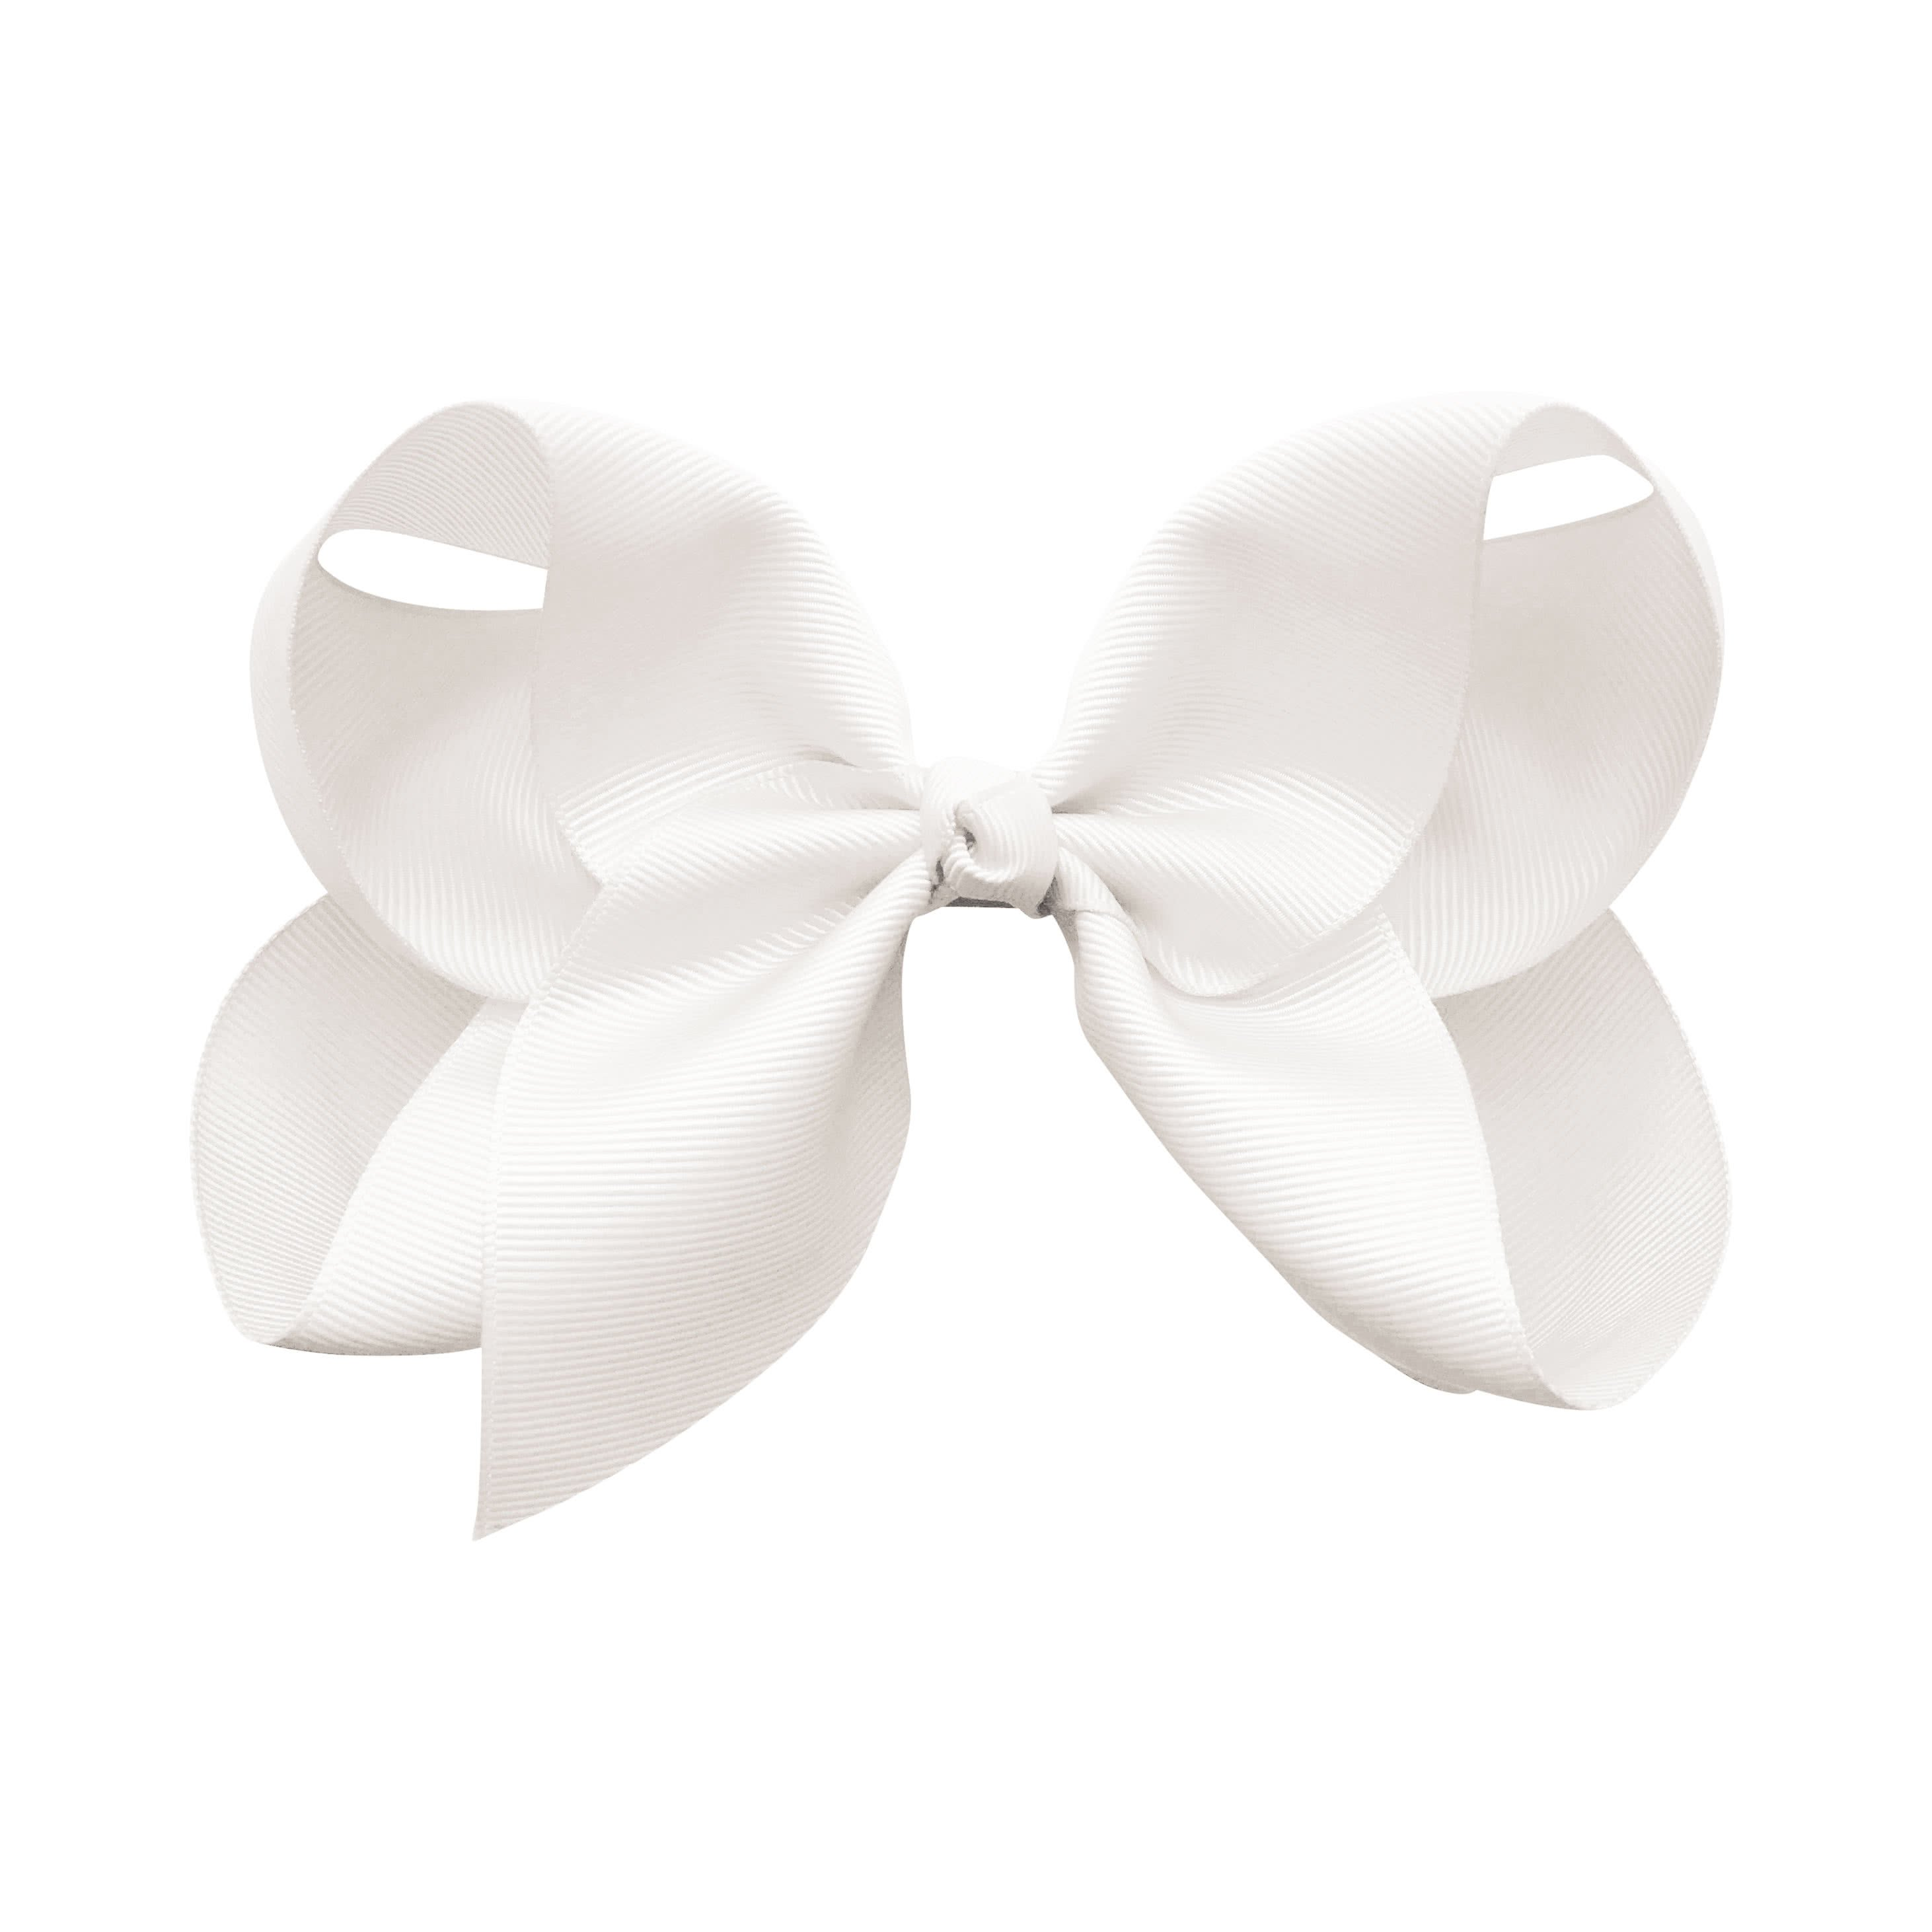 Image of Jumbo Boutique Bow - alligator clip - white